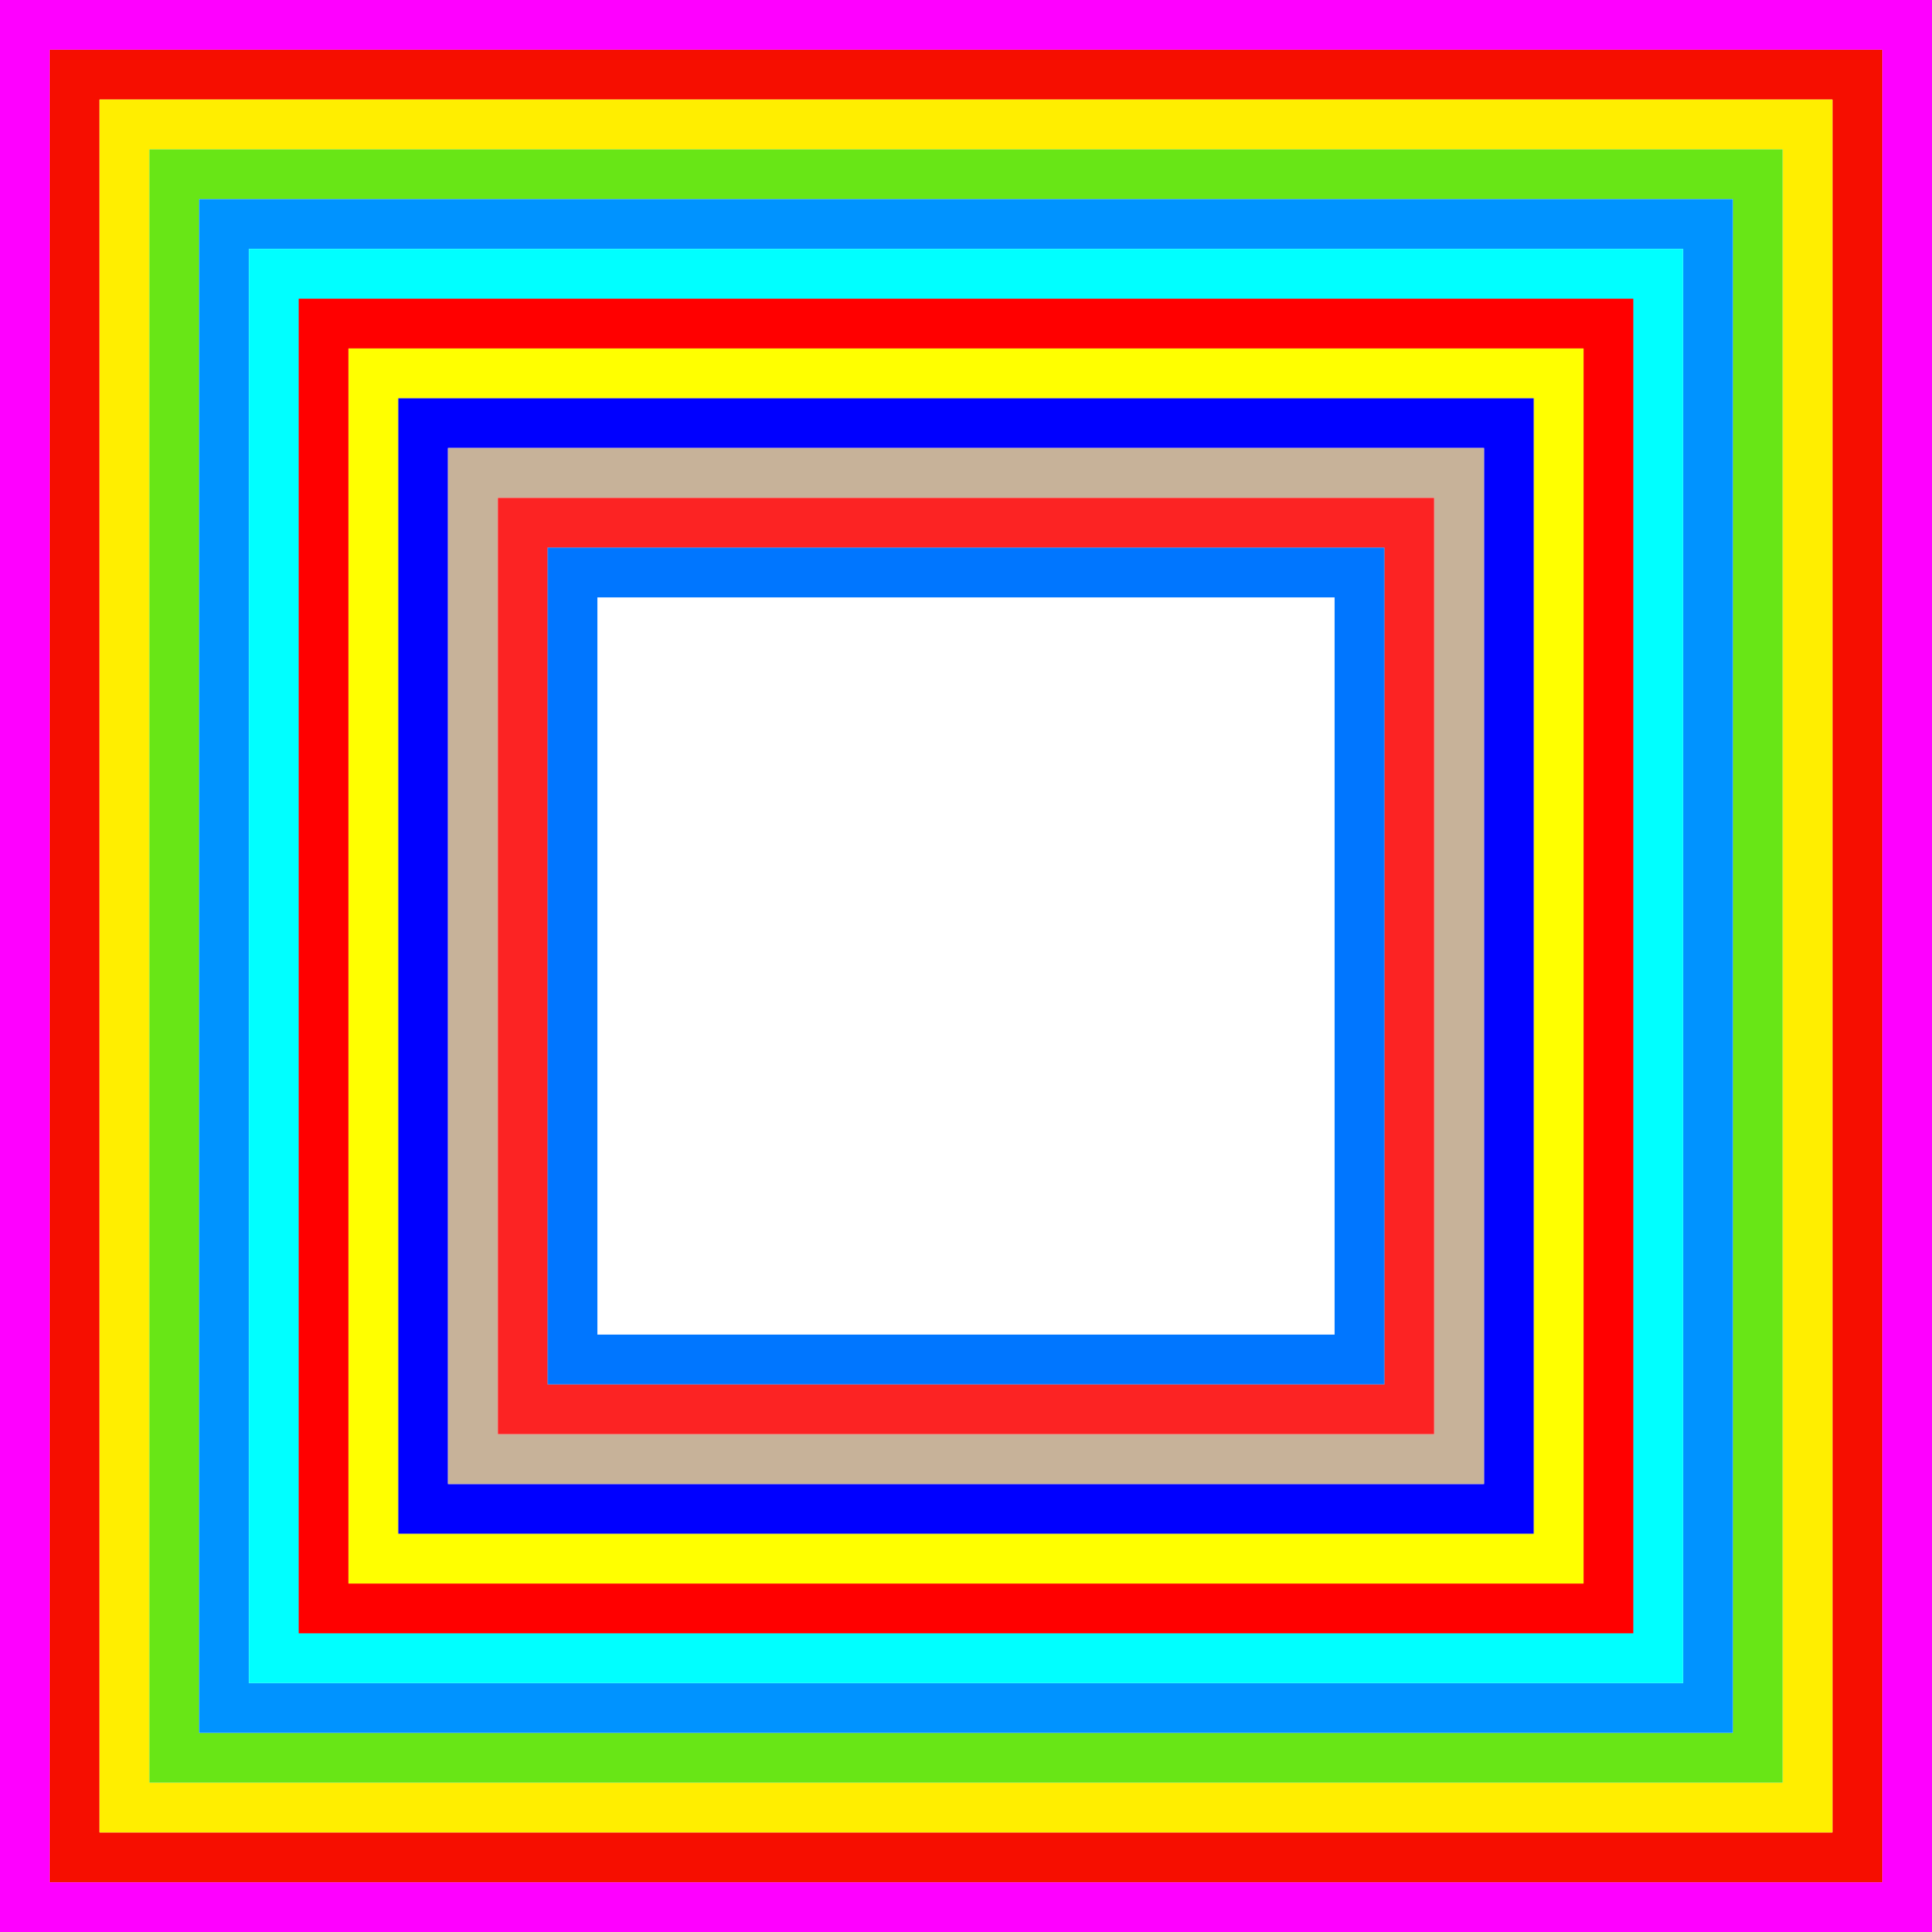 Rainbow Frame by GDJ